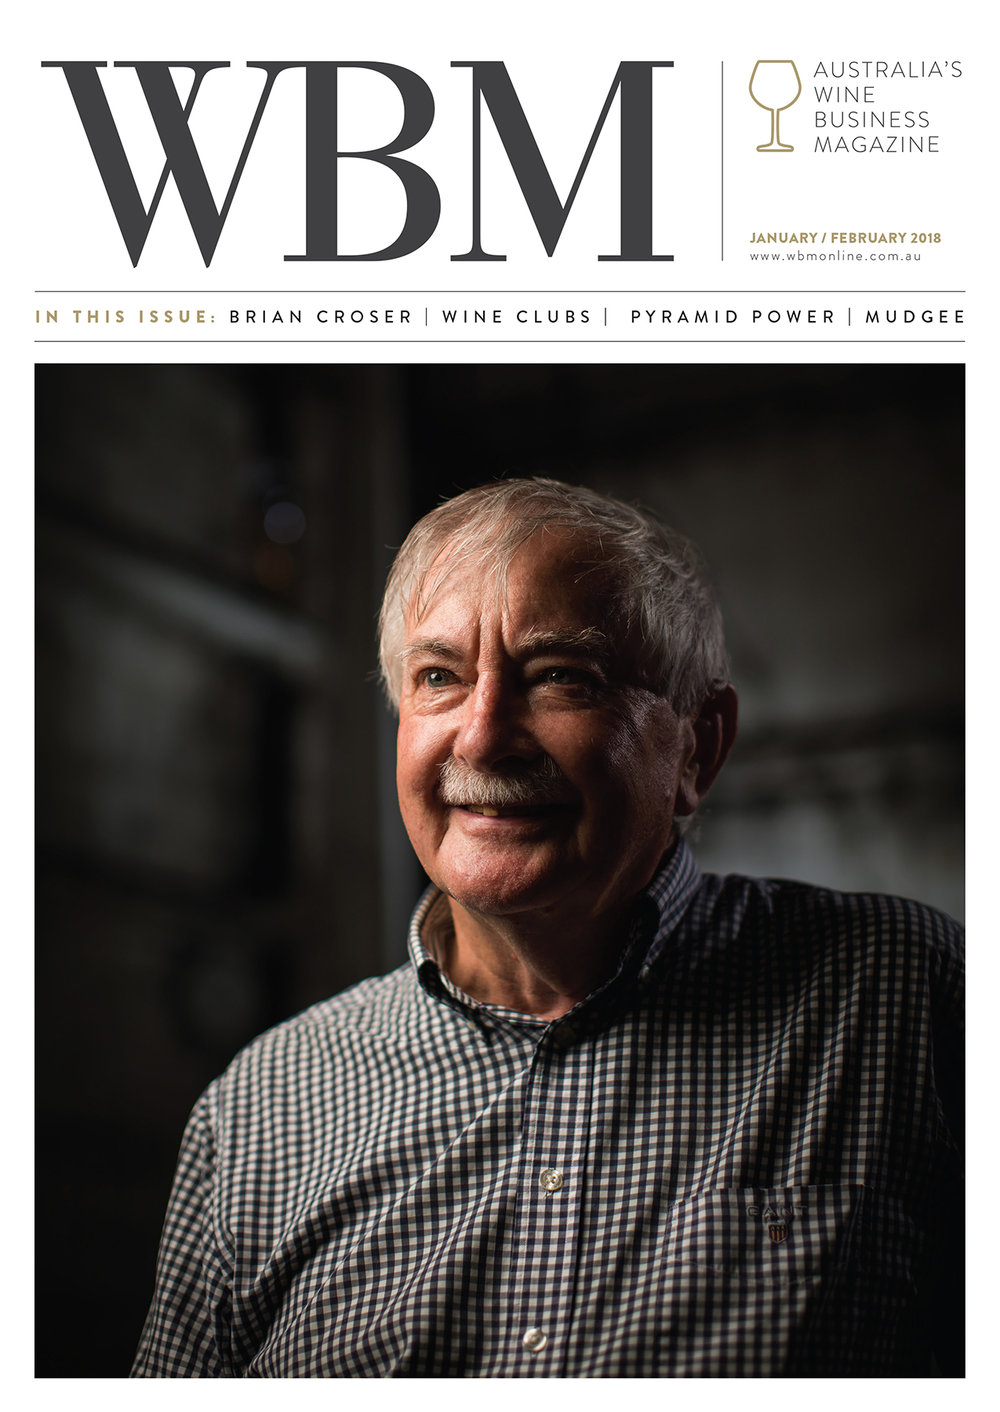 WBM 1801 January February 2018 cover.jpg